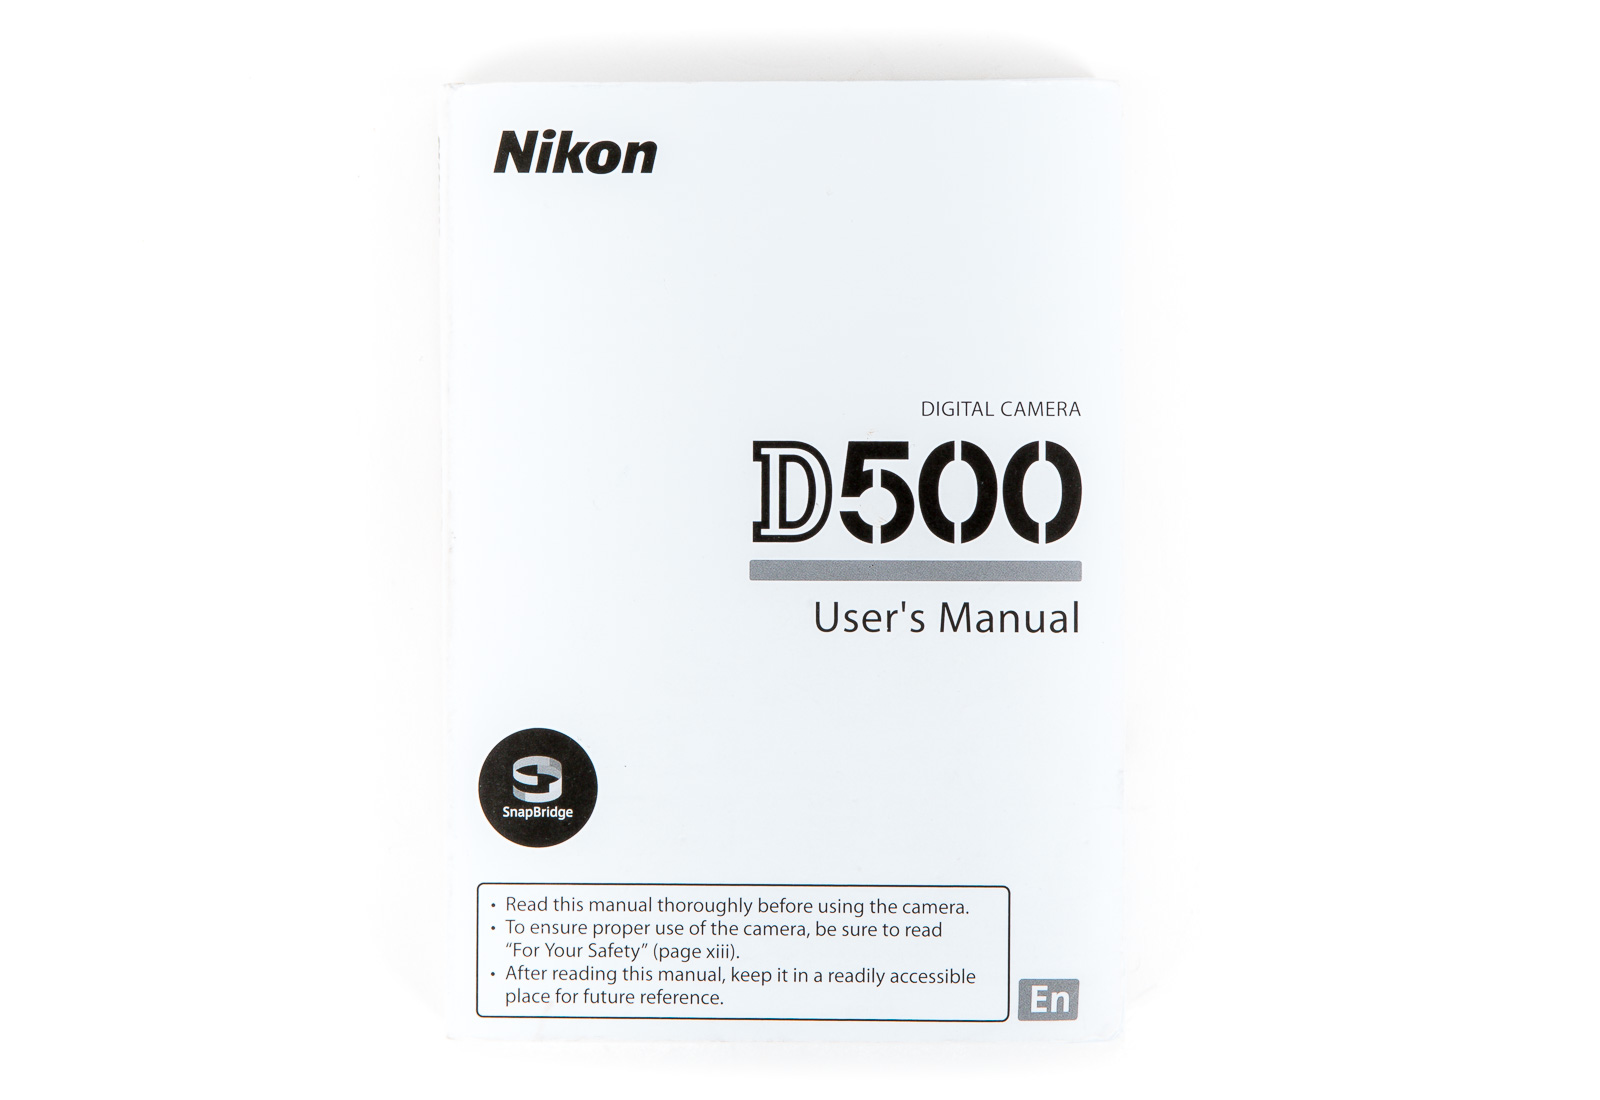 Rent a Nikon D500 at LensProToGo.com